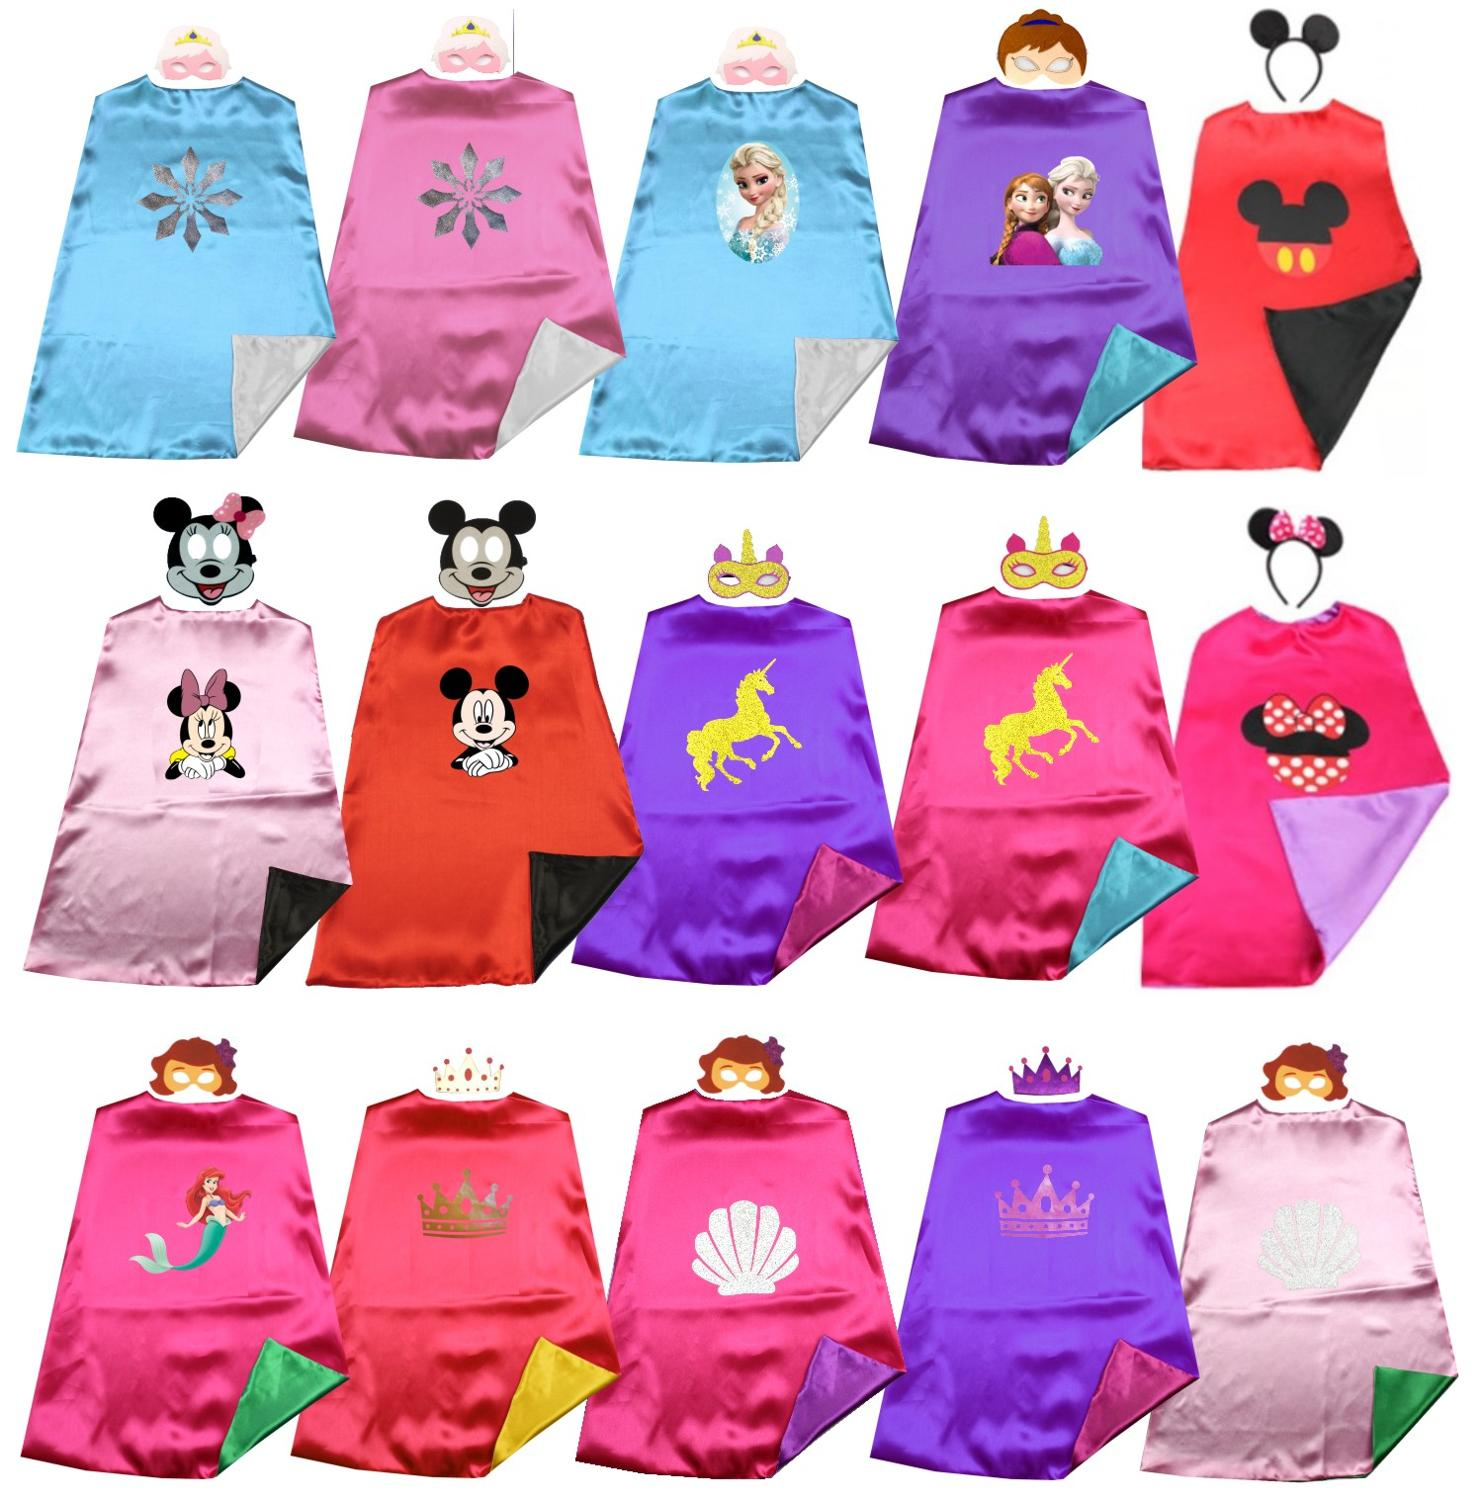 Meisjes SuperHero Cape Unicorn Cape kinder capes Prins & Princesscape - Carnavalskostuums